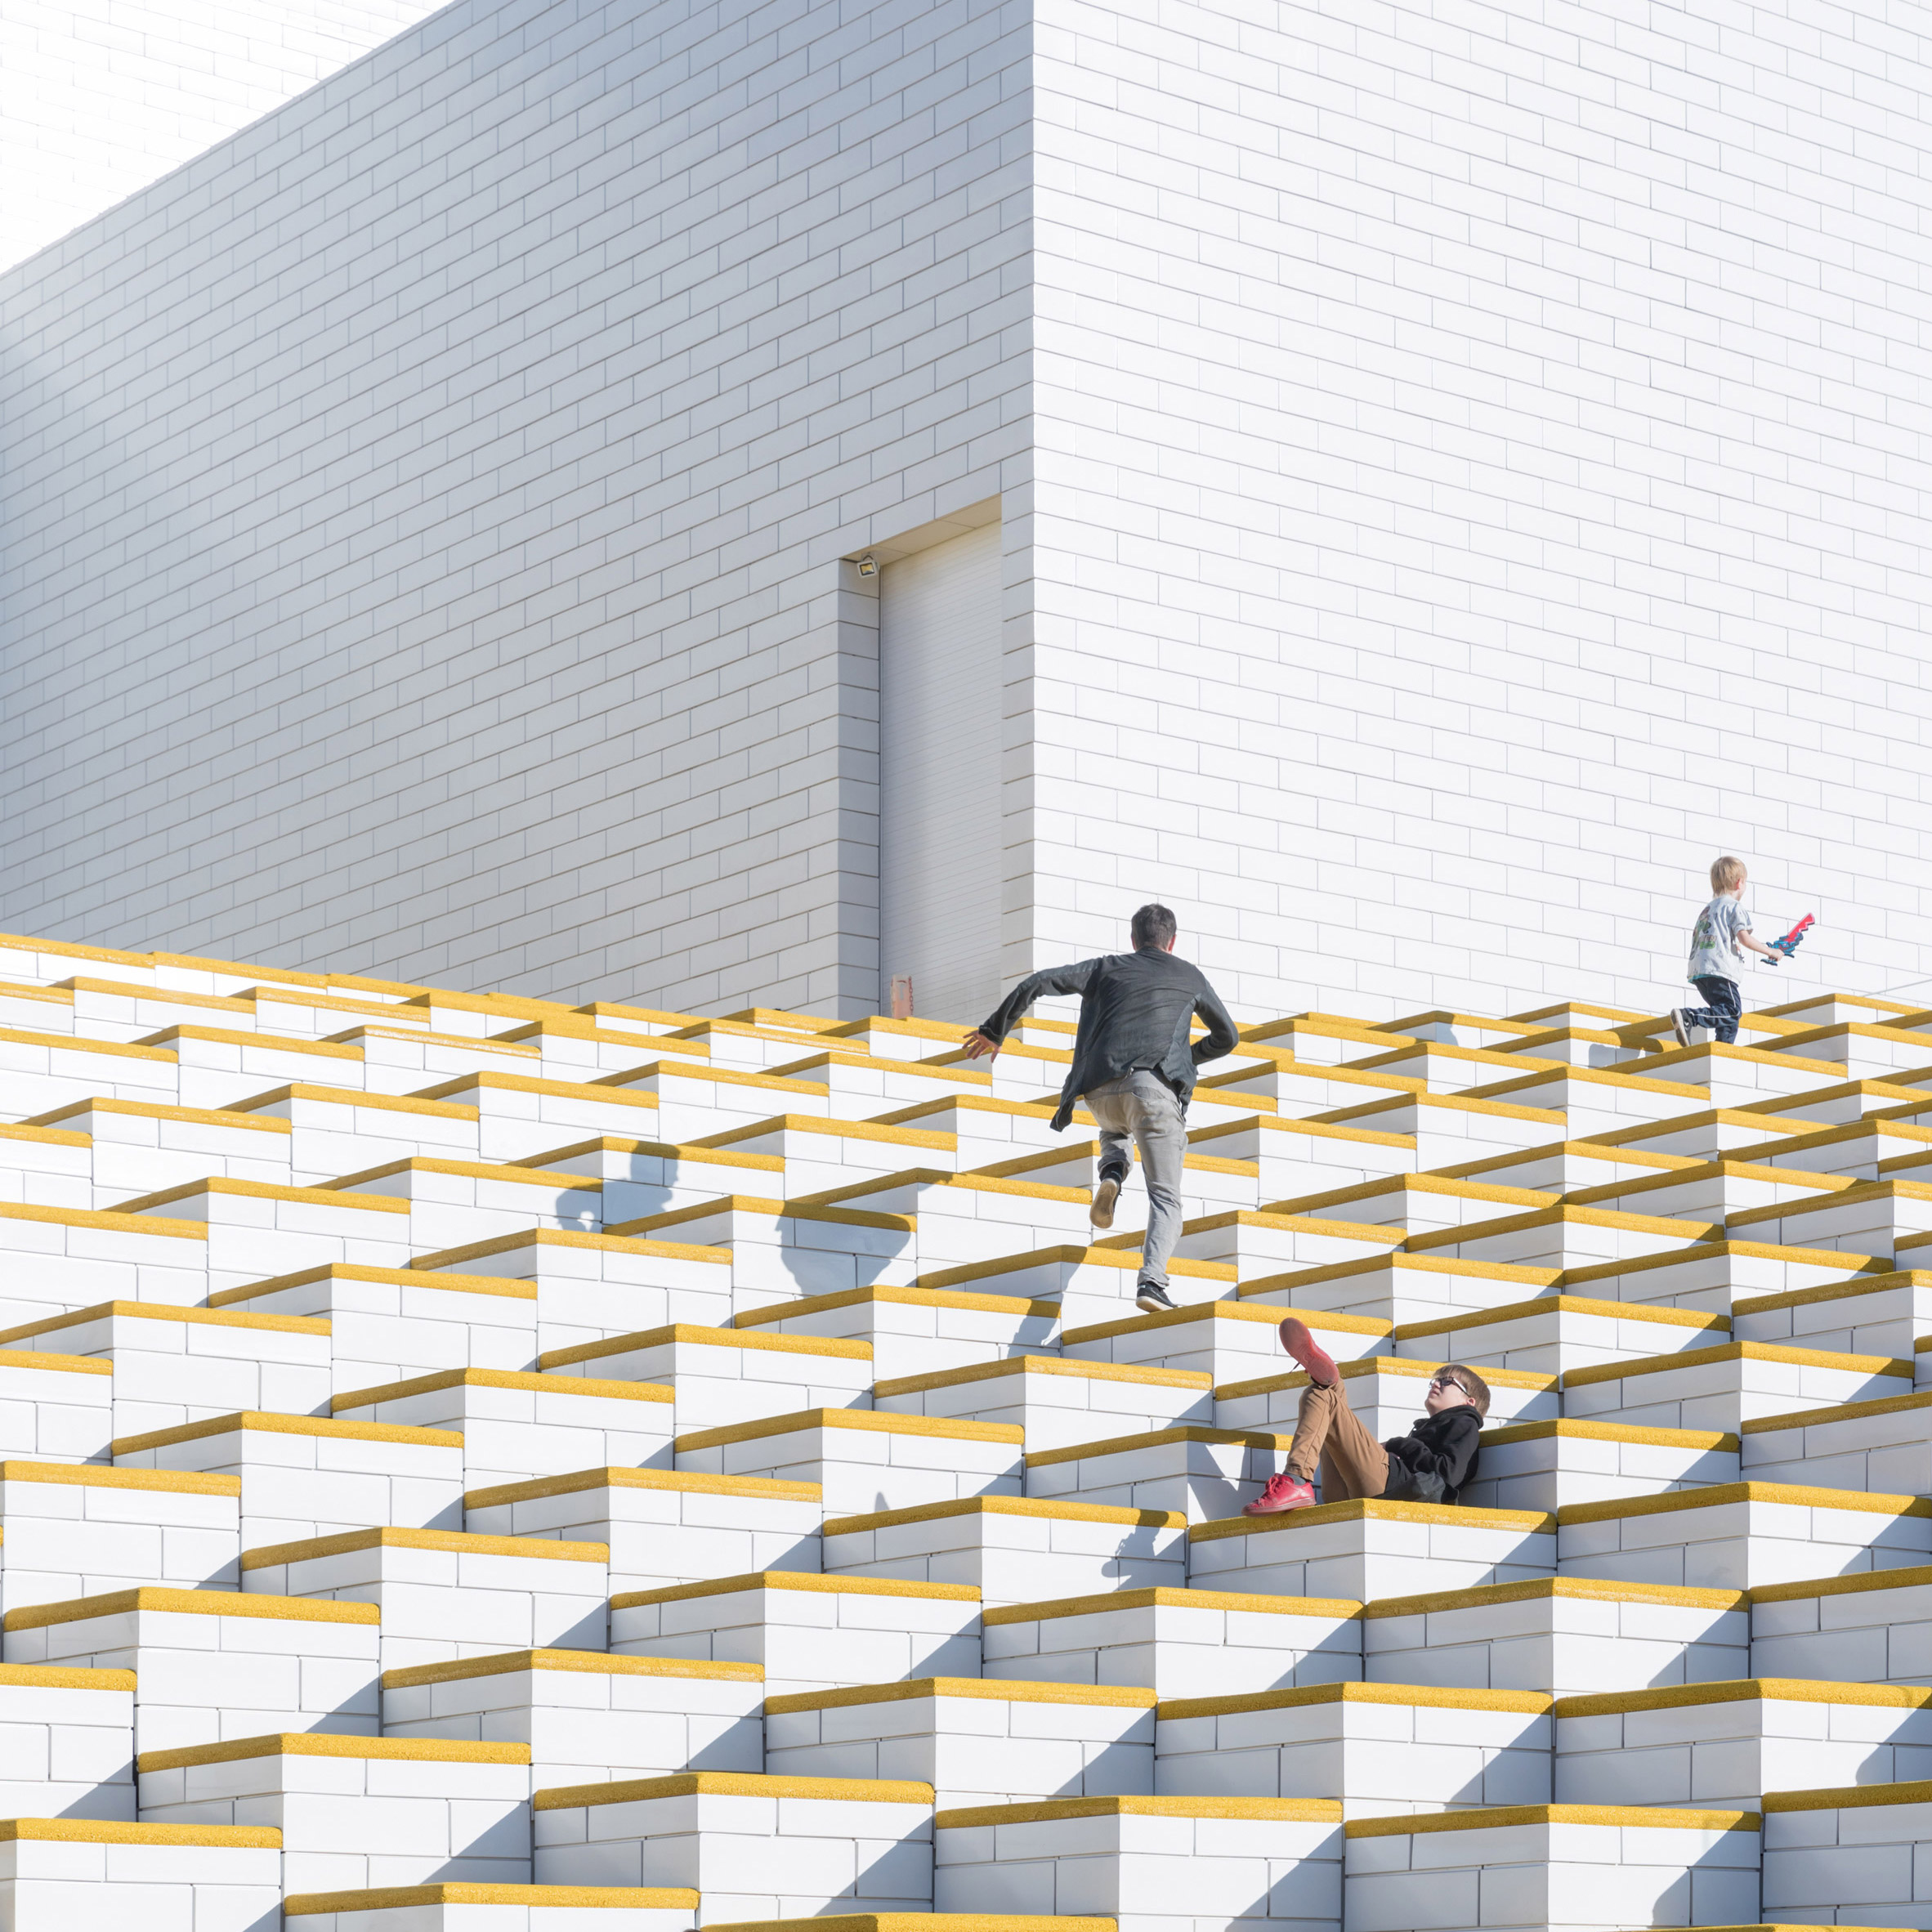 Big Completes Lego Visitor Centre Shaped Like Childrens Building Bricks